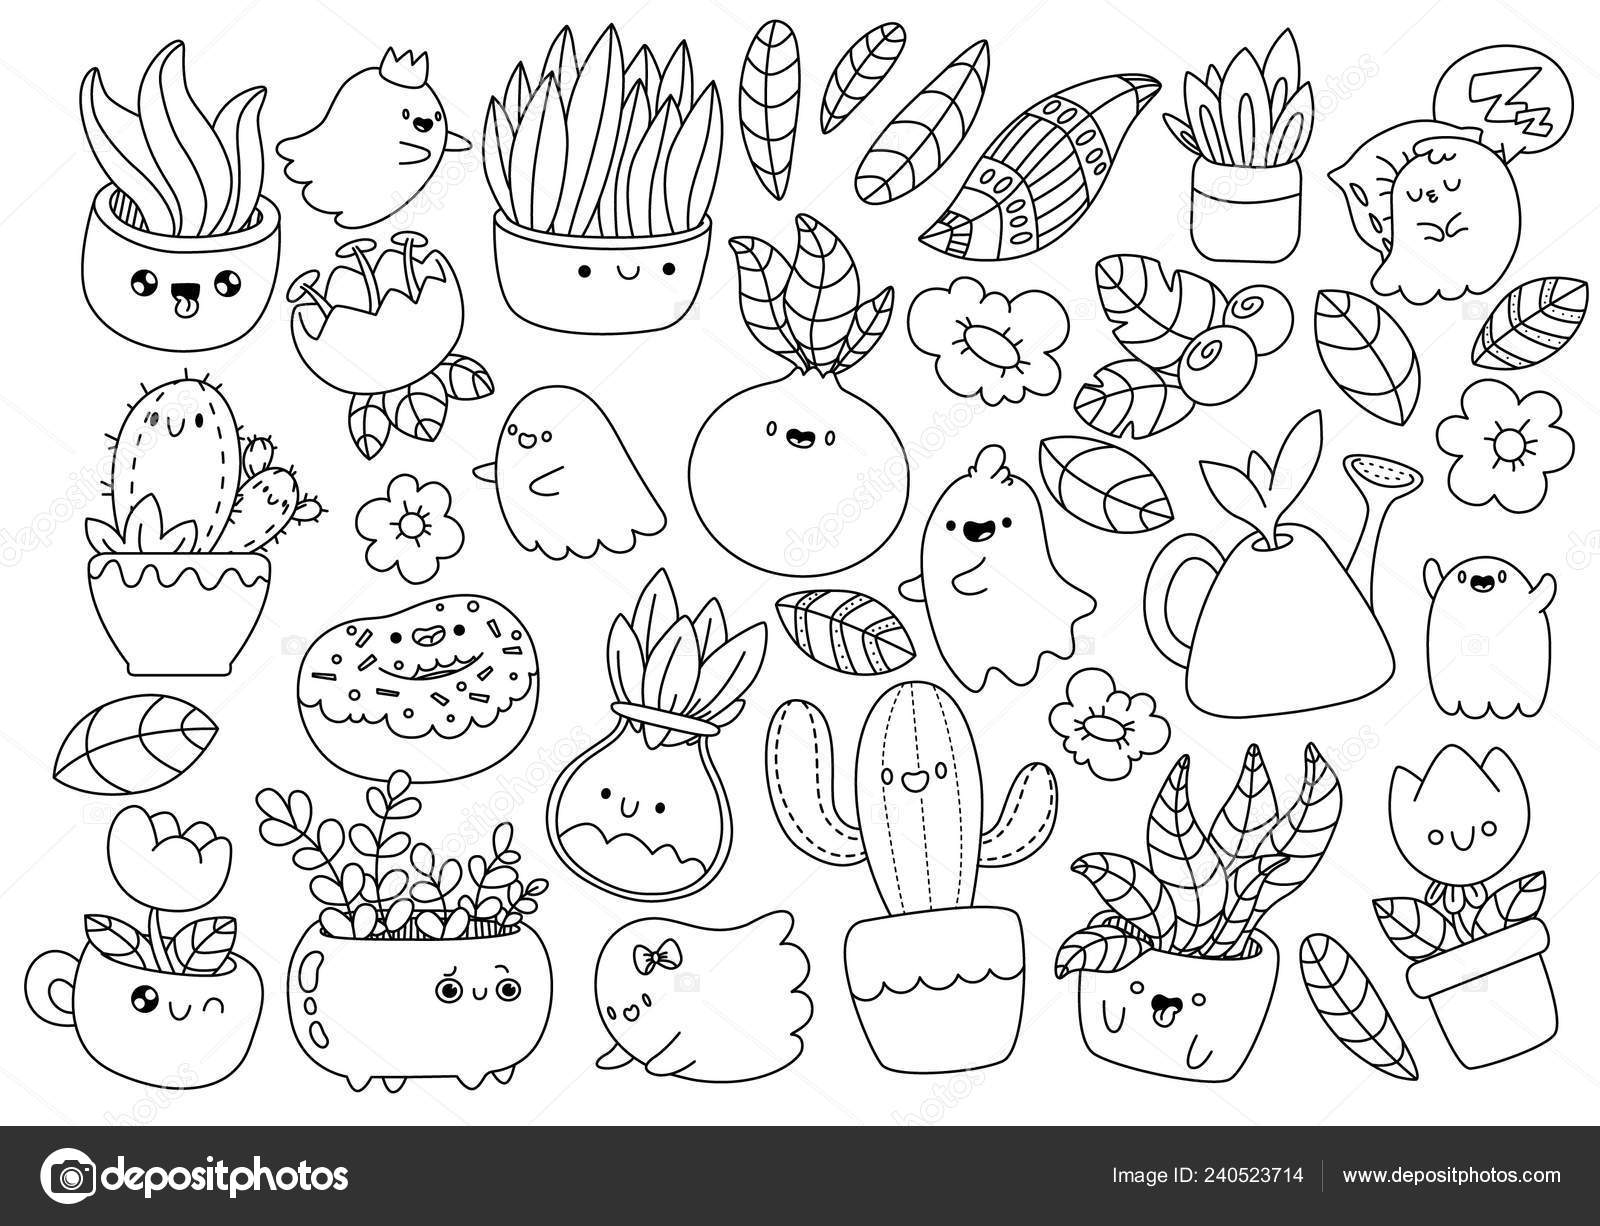 Plantas Y Monstruos Cute Dibujos Animados Estilo Kawaii Anti